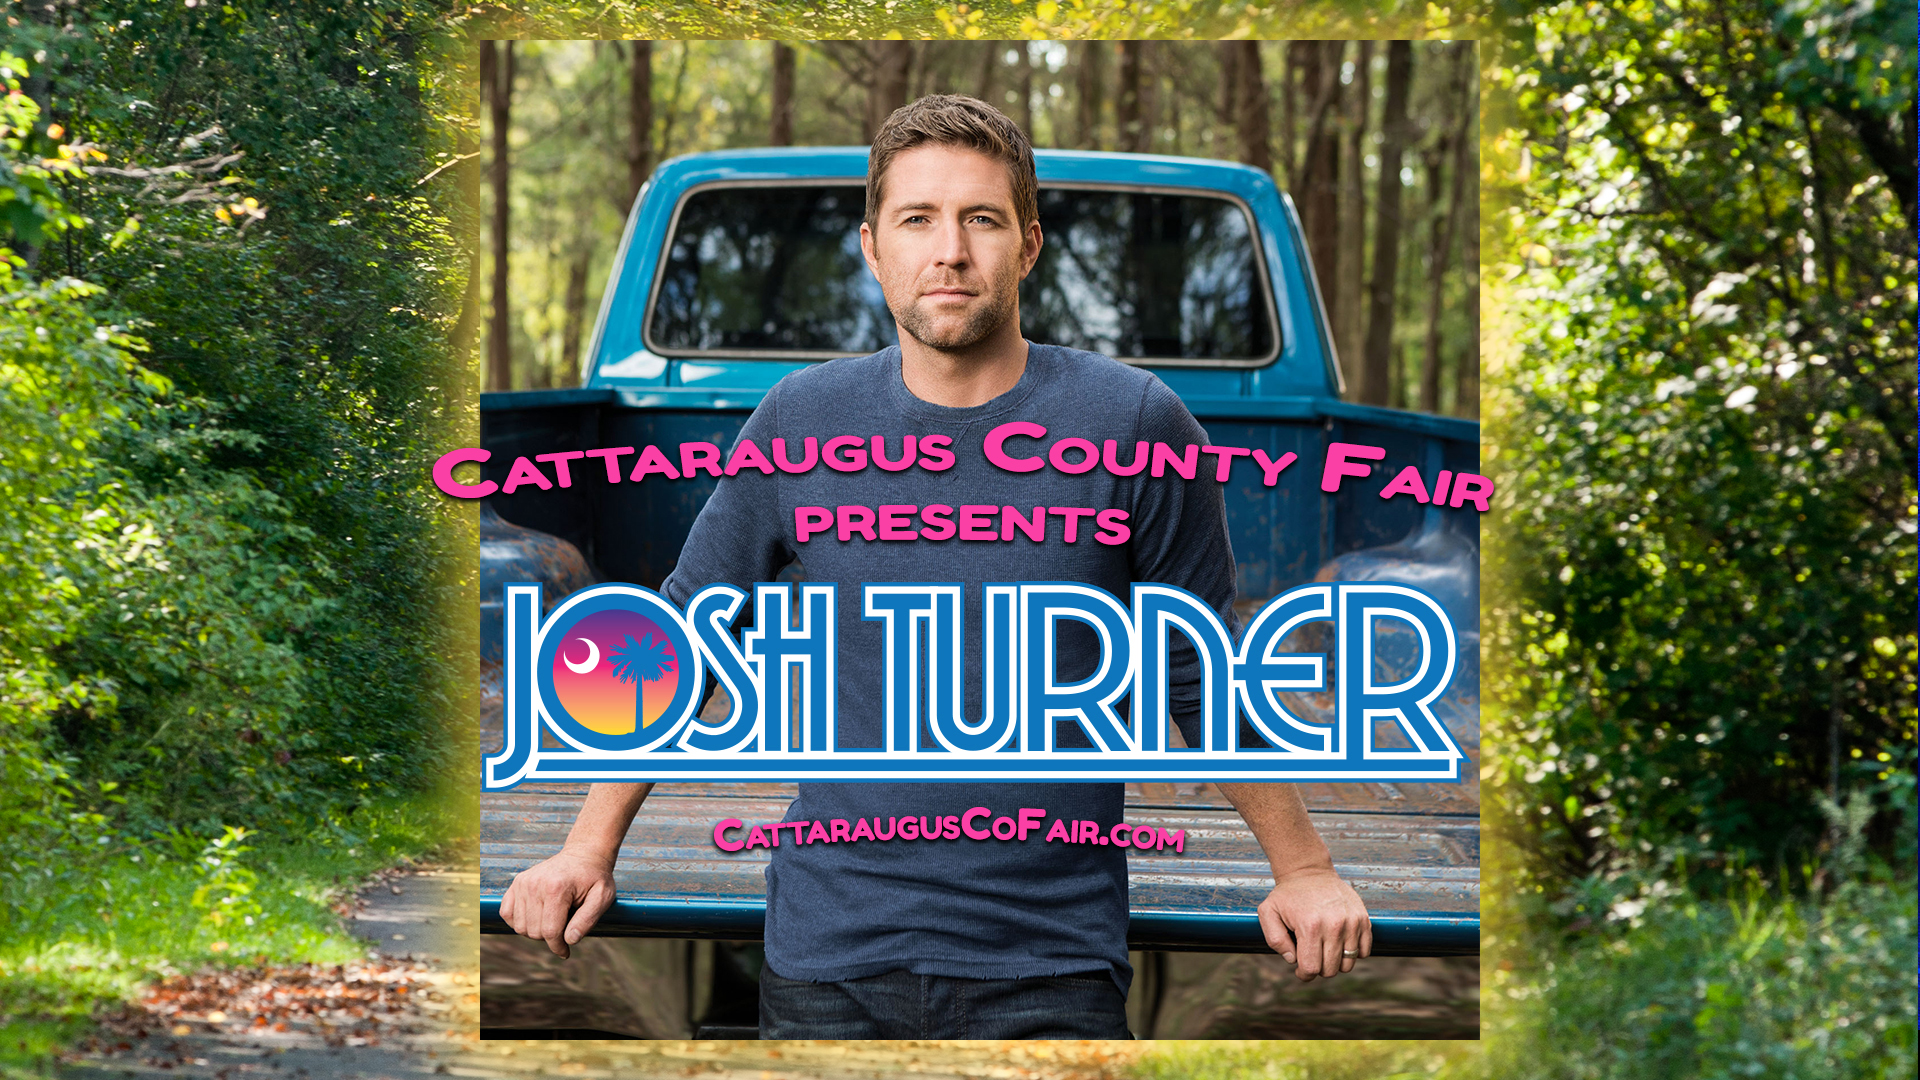 Josh turner at the Cattaraugus County Fair